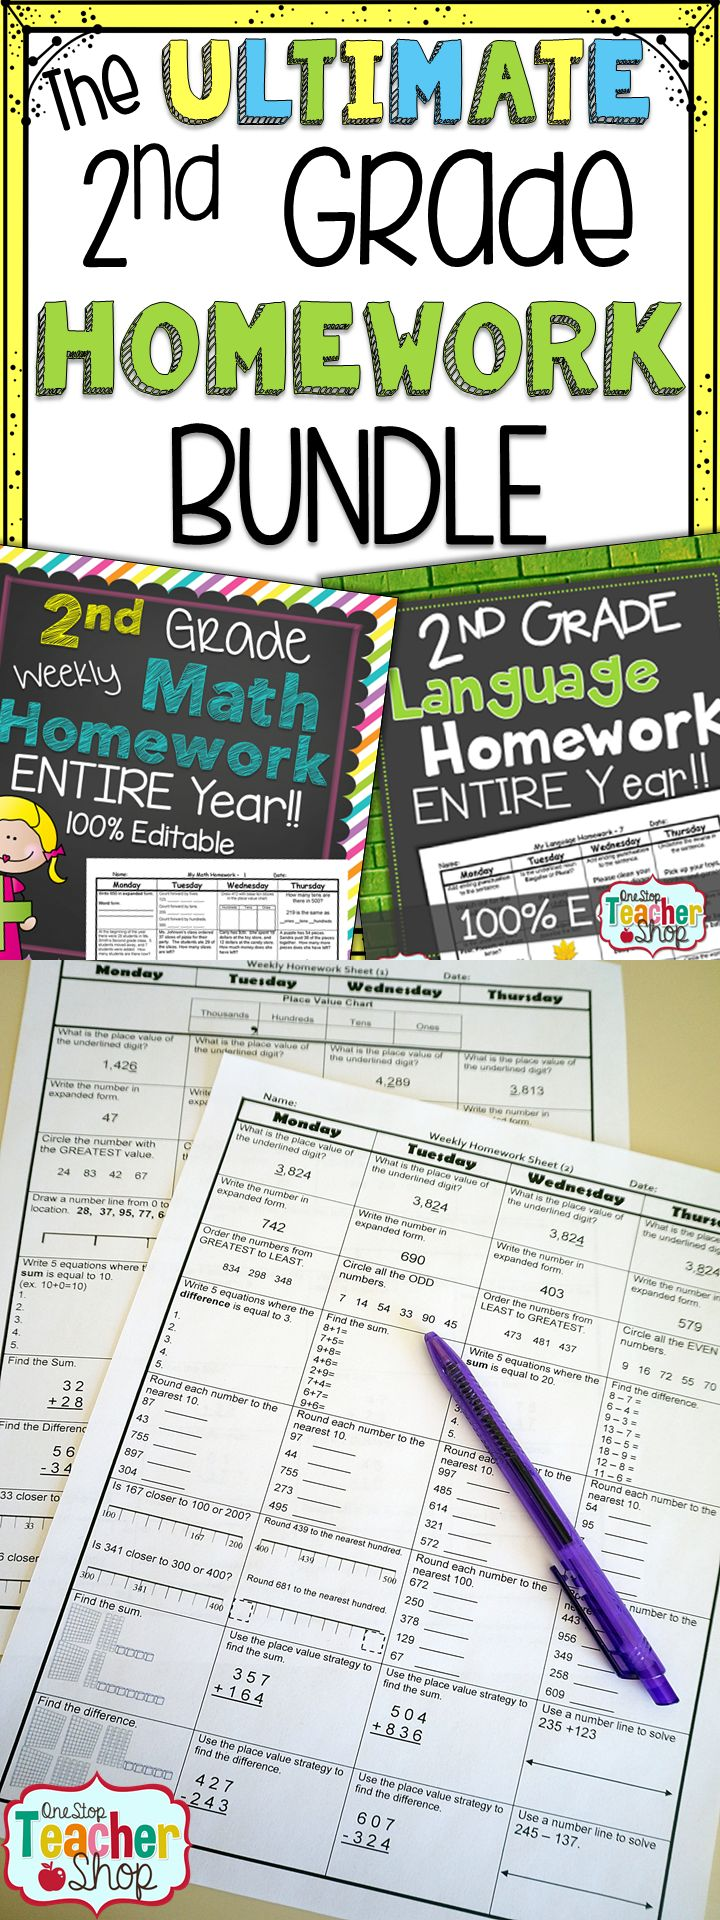 2nd Grade Math & Language Homework for the ENTIRE YEAR. This second grade homework (or centers, or morning work) is 100% EDITABLE, and comes with ANSWER KEYS! Common Core Aligned. Paid